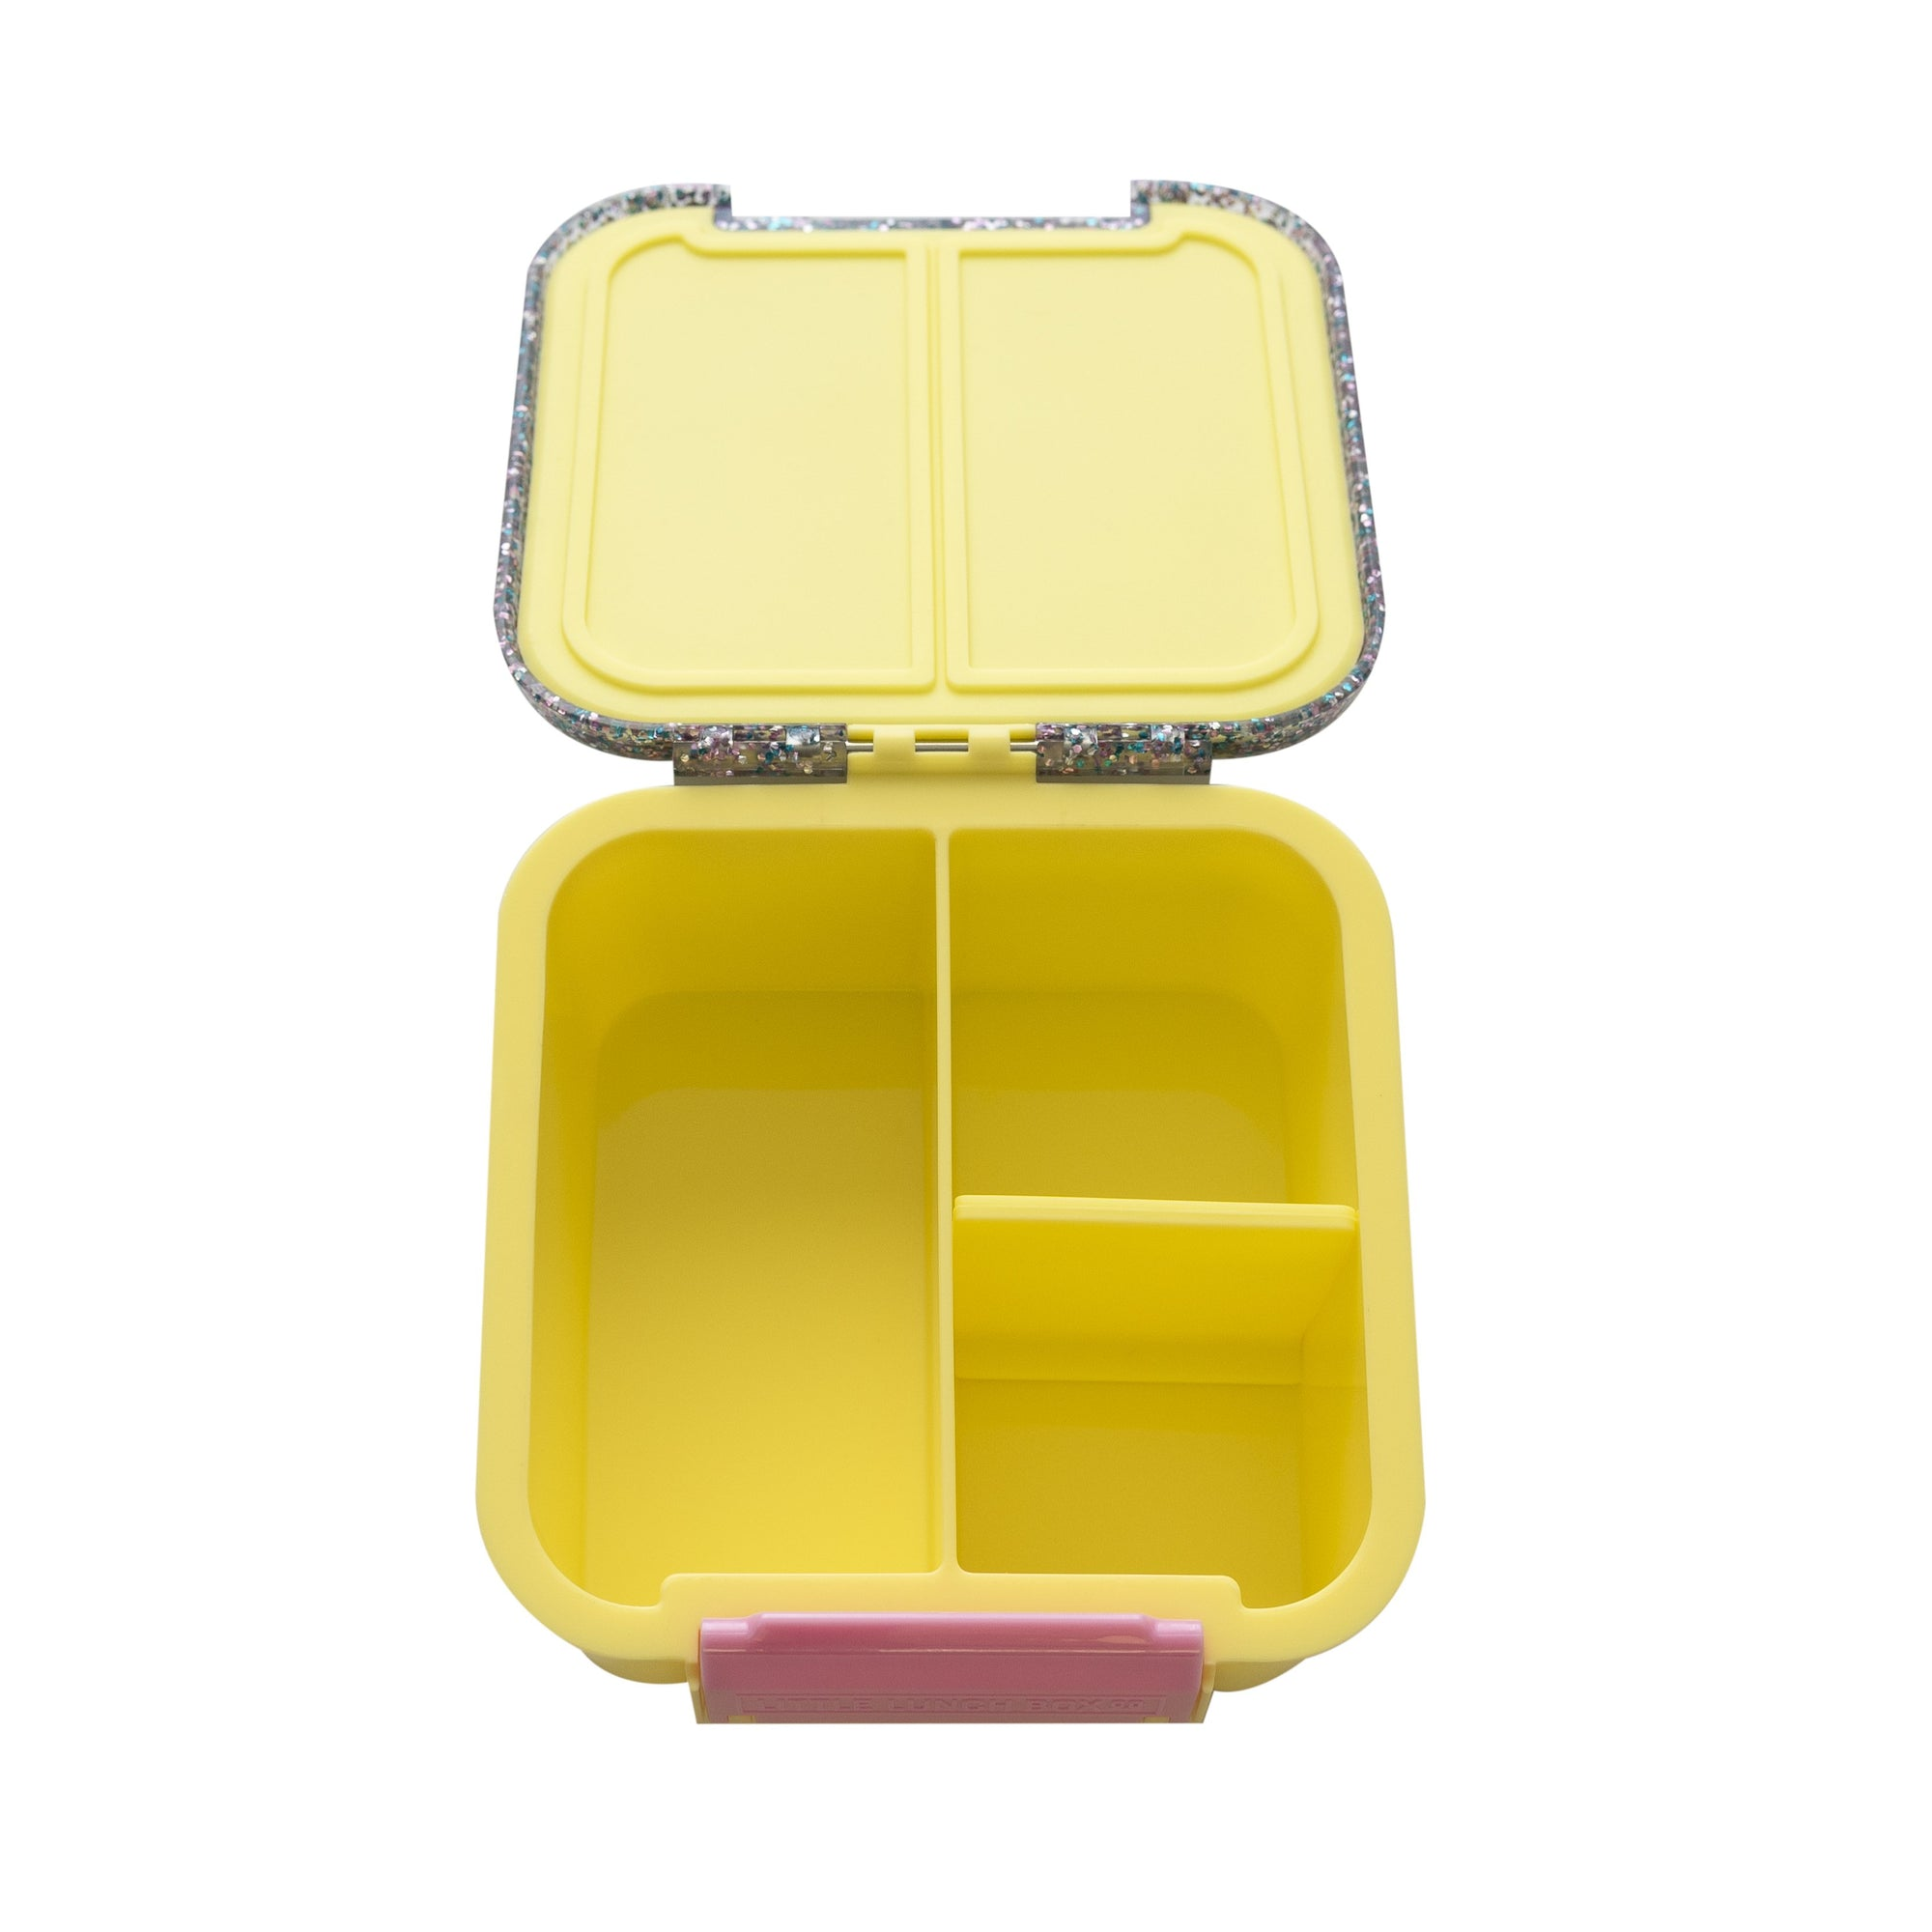 Little Lunch Box Co - Bento Three - Yellow Glitter (Pre-order ETA Mid Dec 2019)